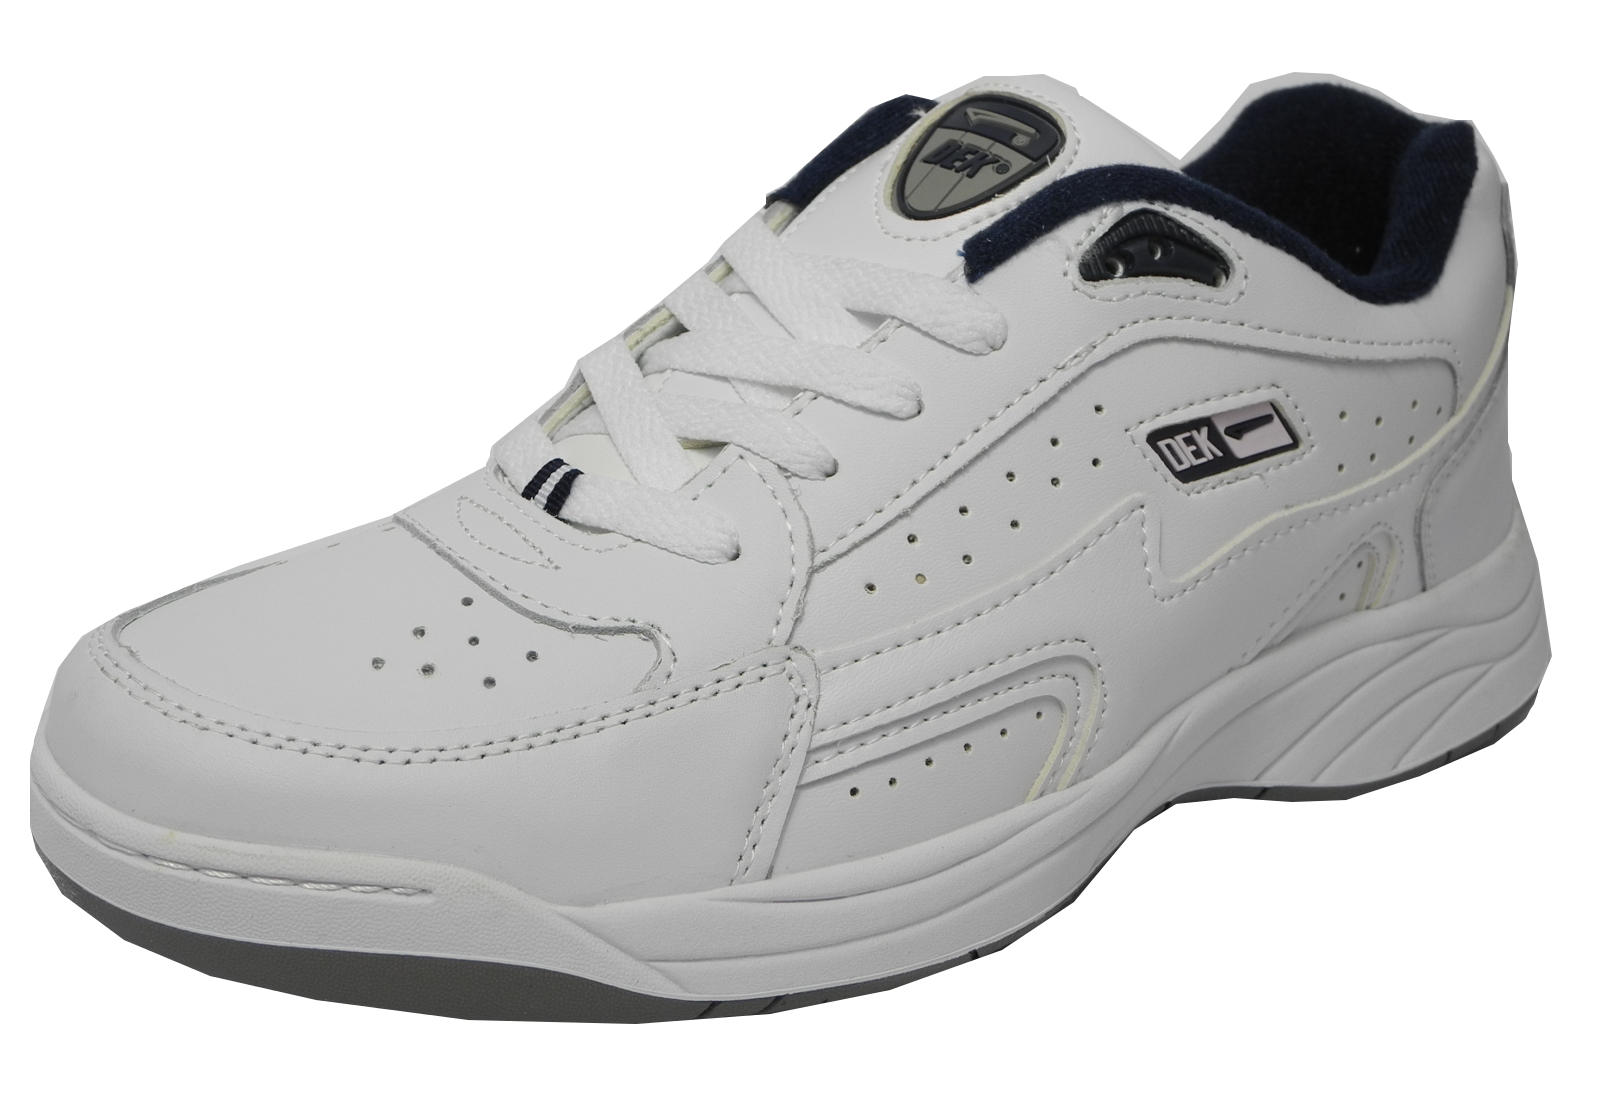 Large Wide Fitting Mens Shoes Uk